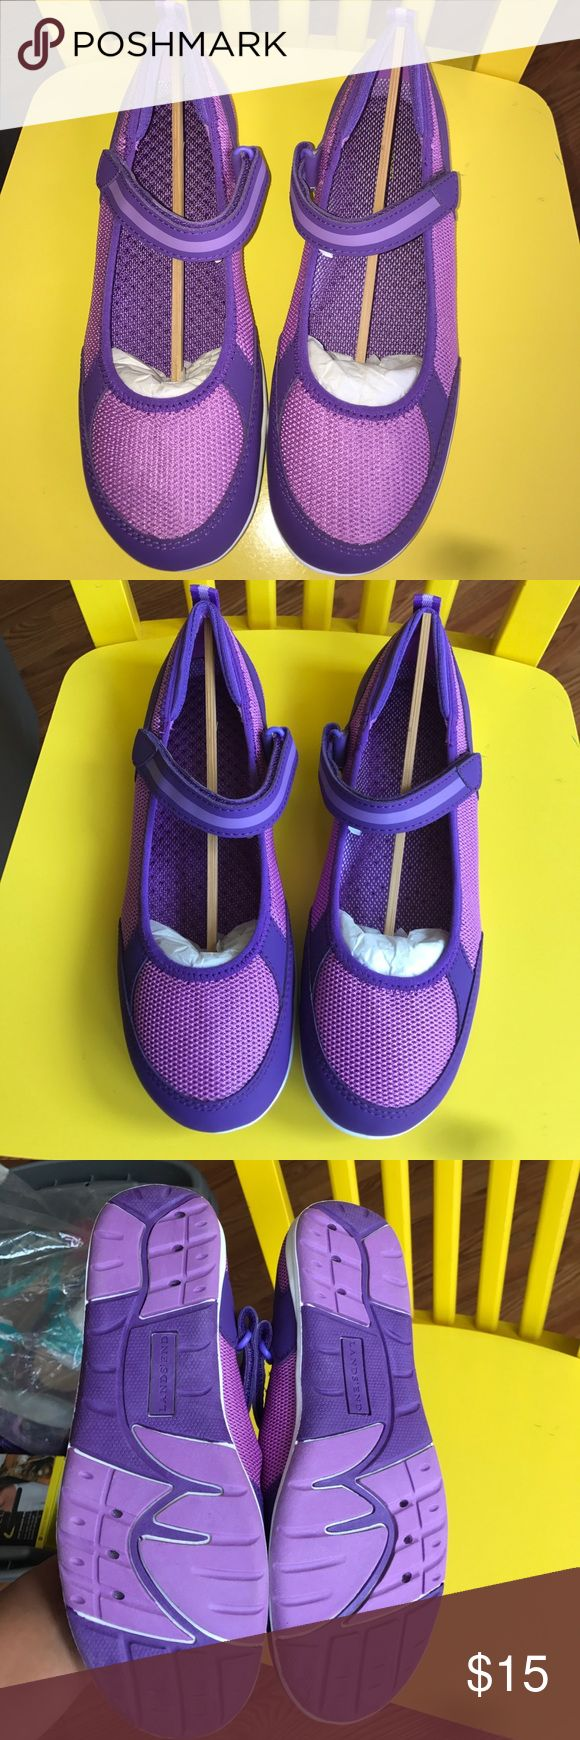 Land's End Girls Water Shoes. Size 5y. New New. Water shows for girls size 5y. Firm price Lands' End Shoes Water Shoes